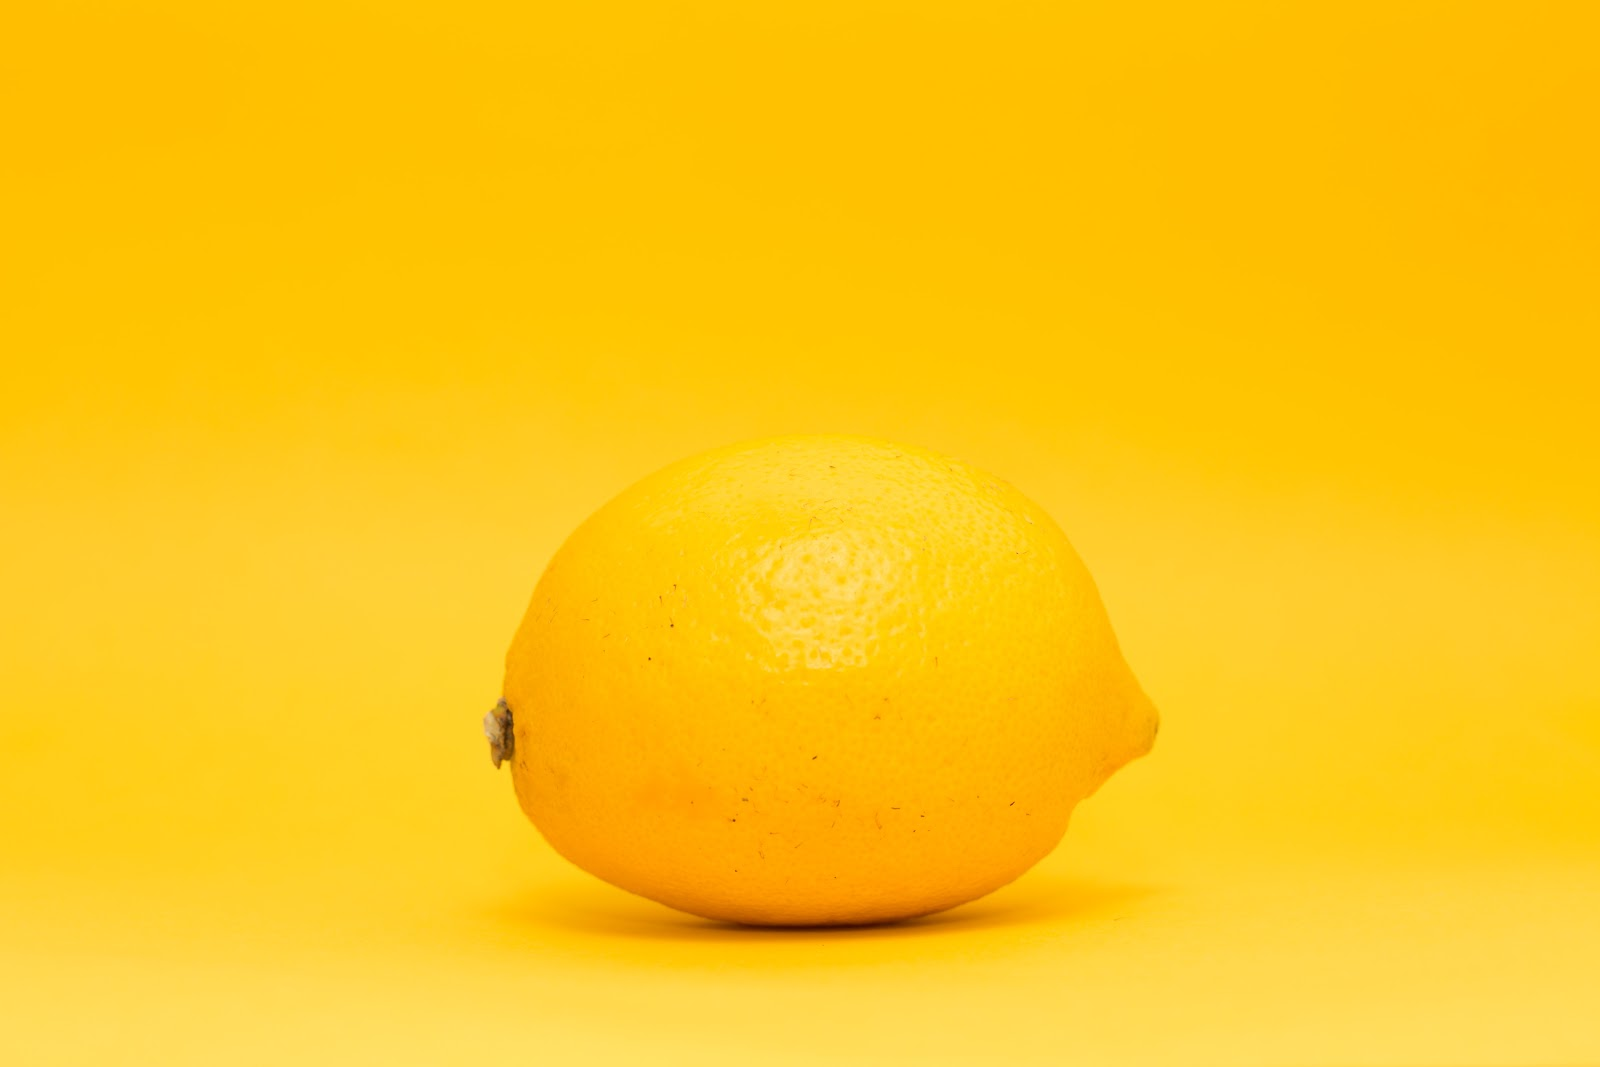 Yellow lemon on a yellow monochrome backdrop